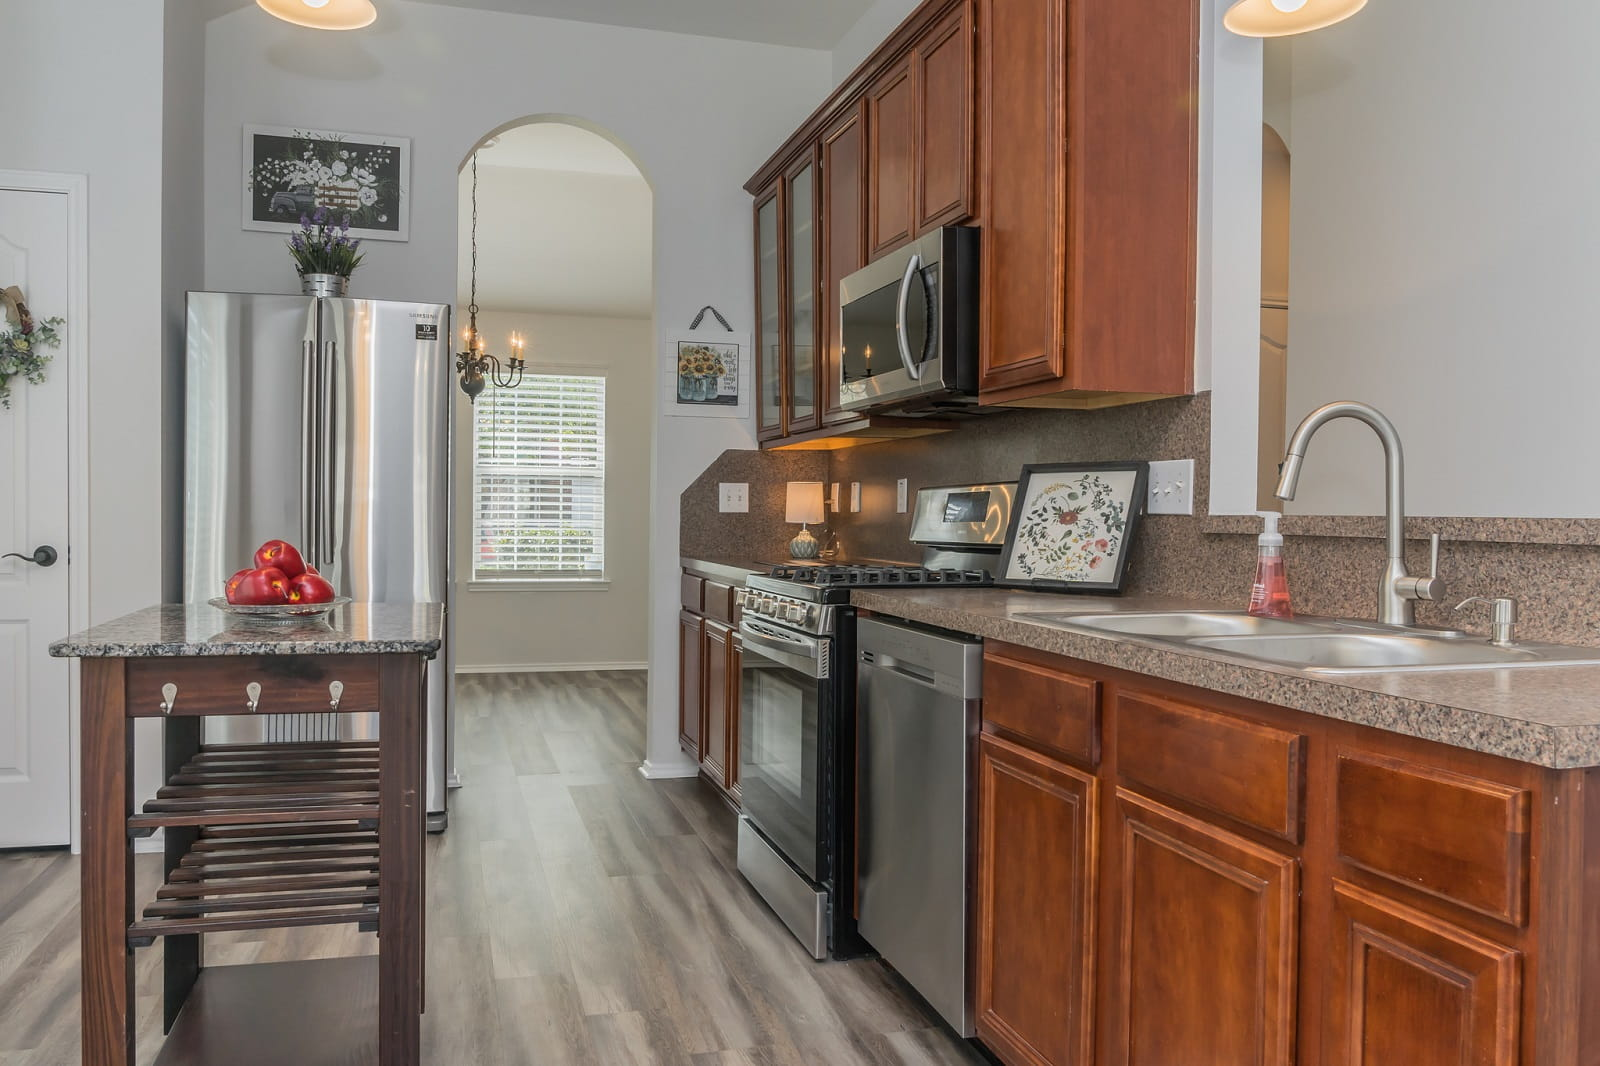 Real Estate Photographers in Baytown - TX - Kitchen View